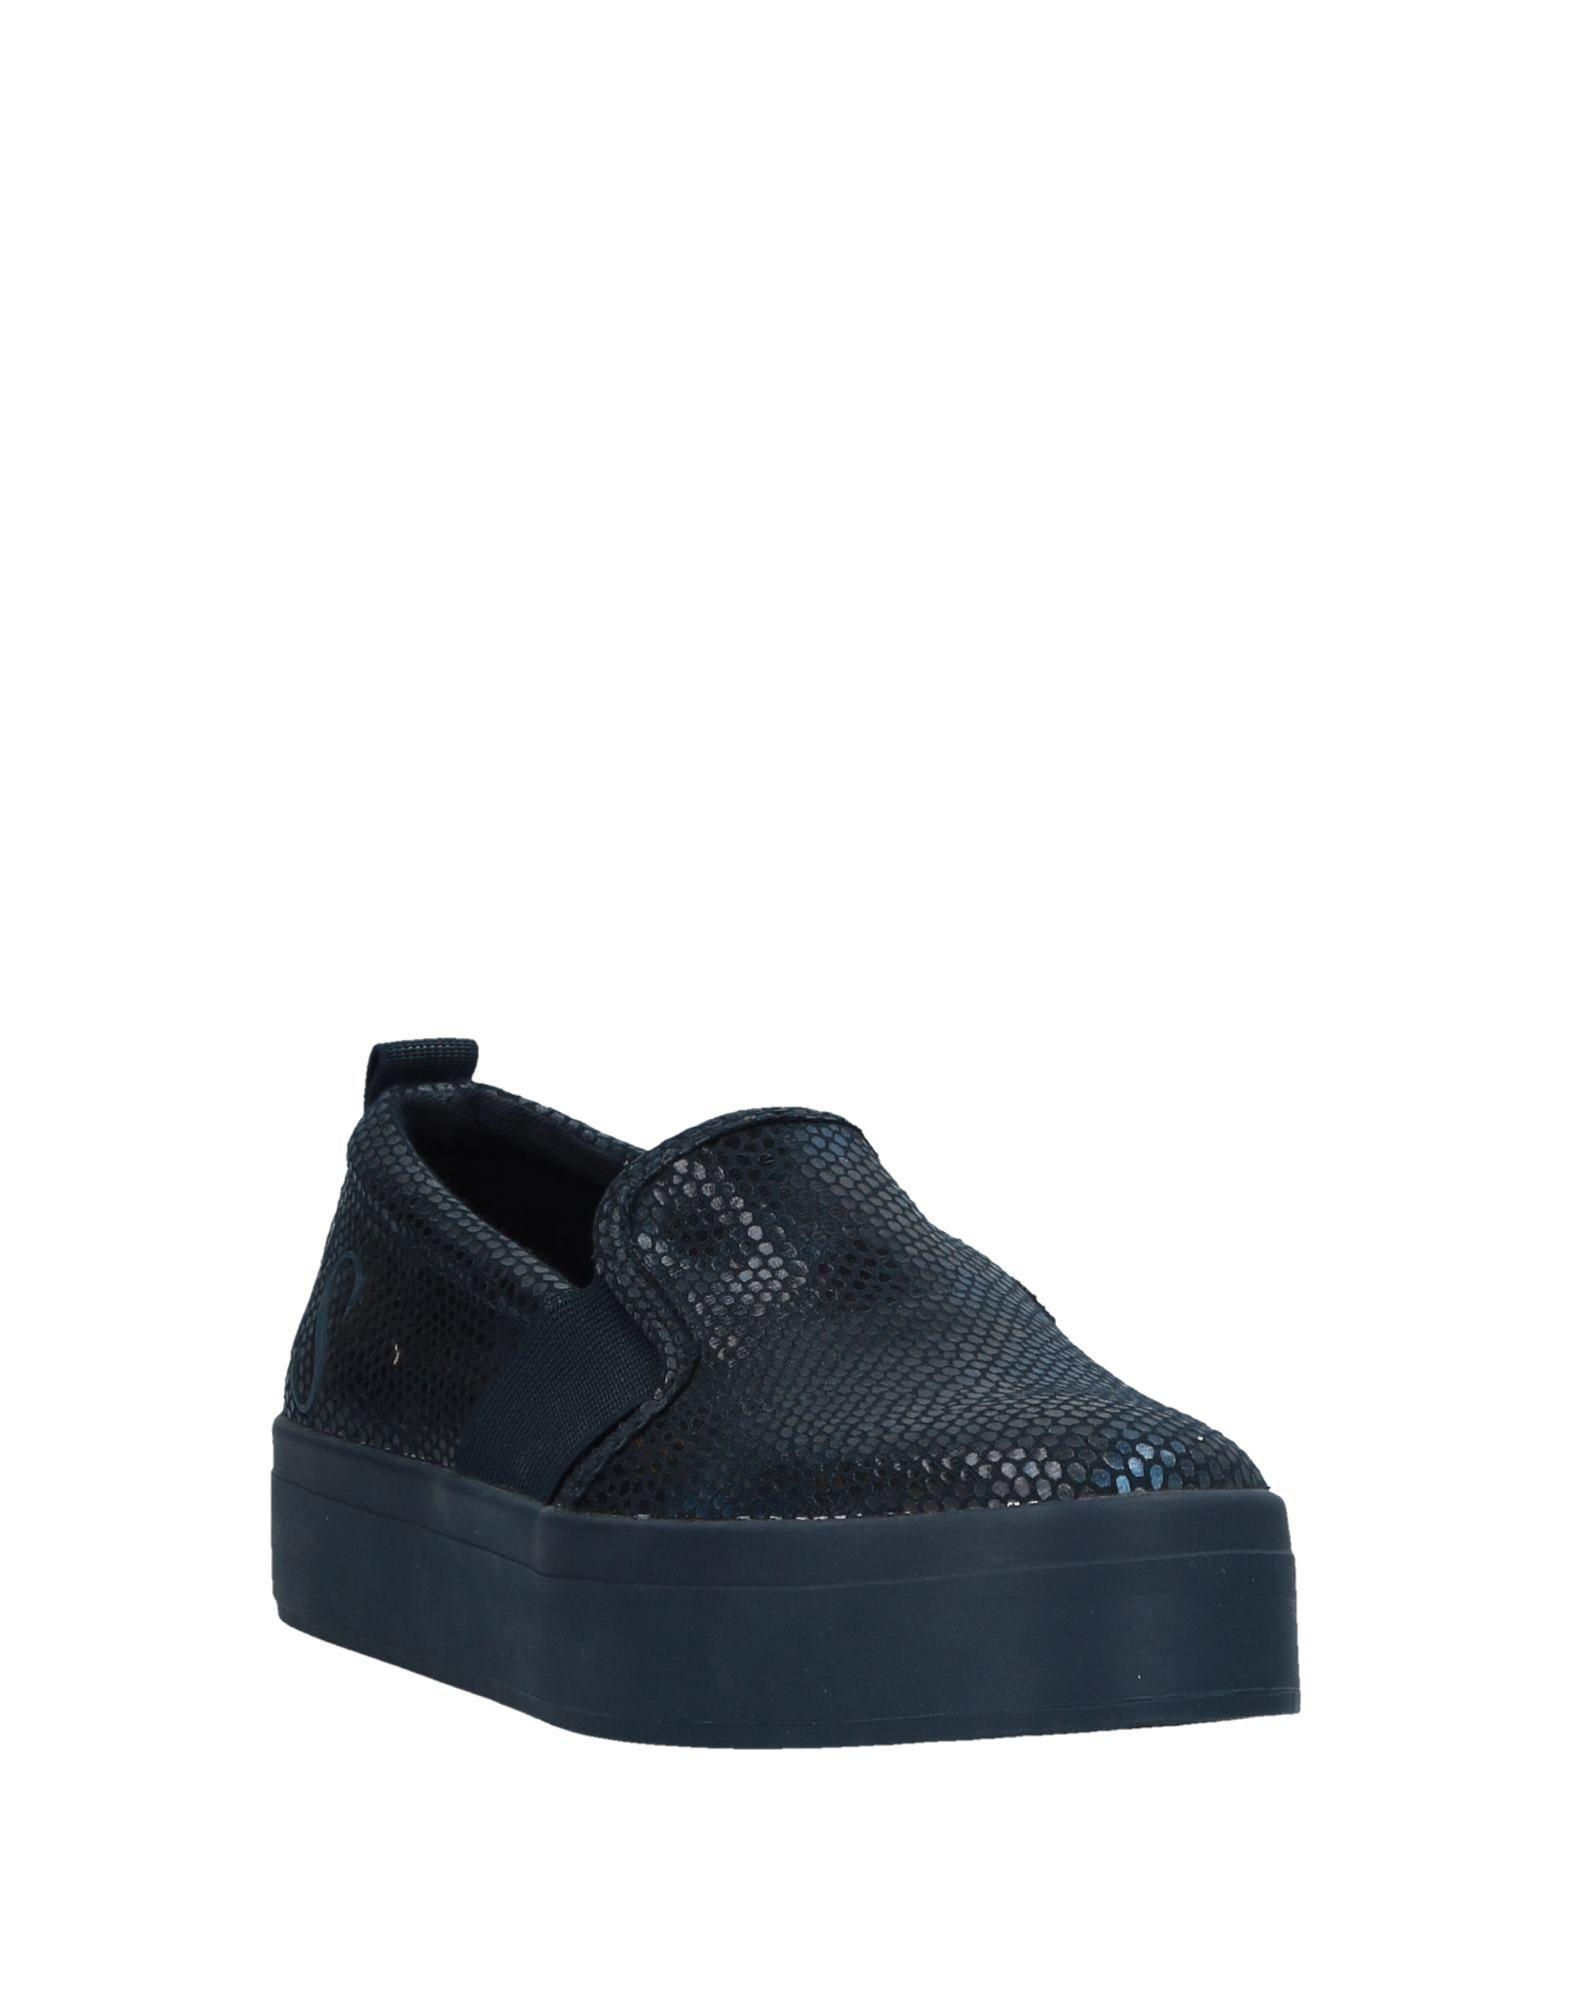 Guess Rubber Low-tops & Sneakers in Blue